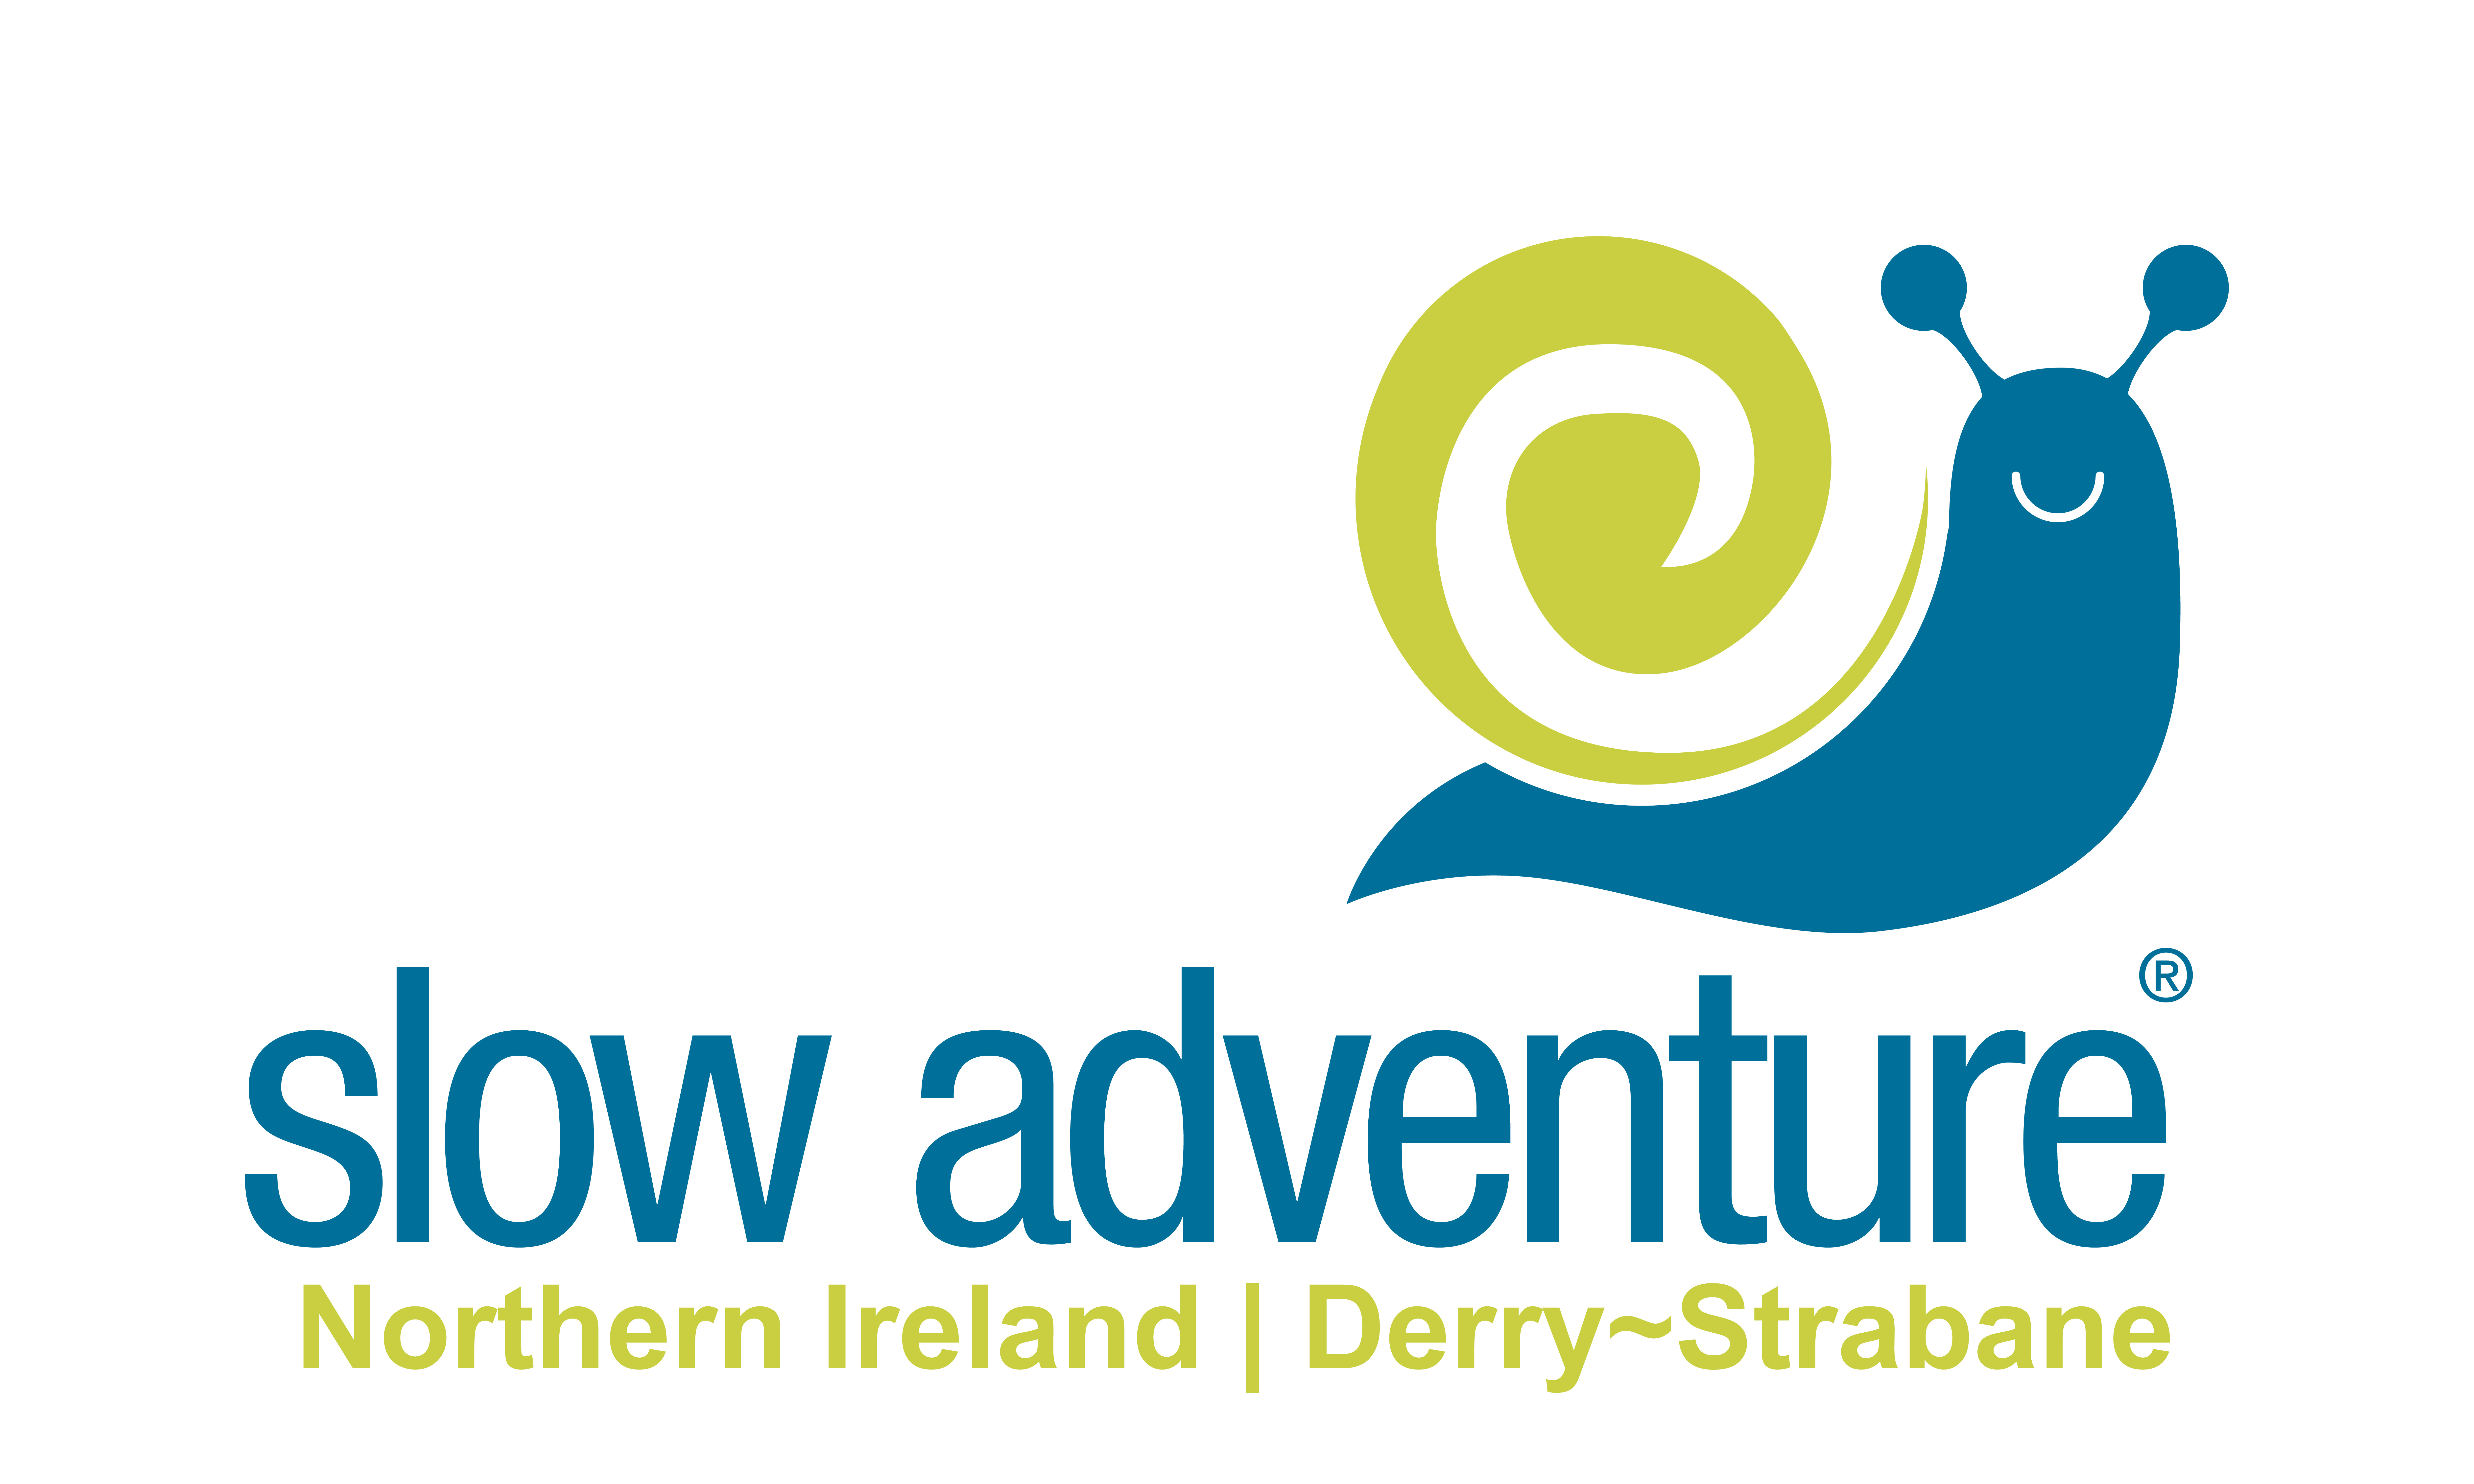 slow adventure tourism marketing campaign outdoor